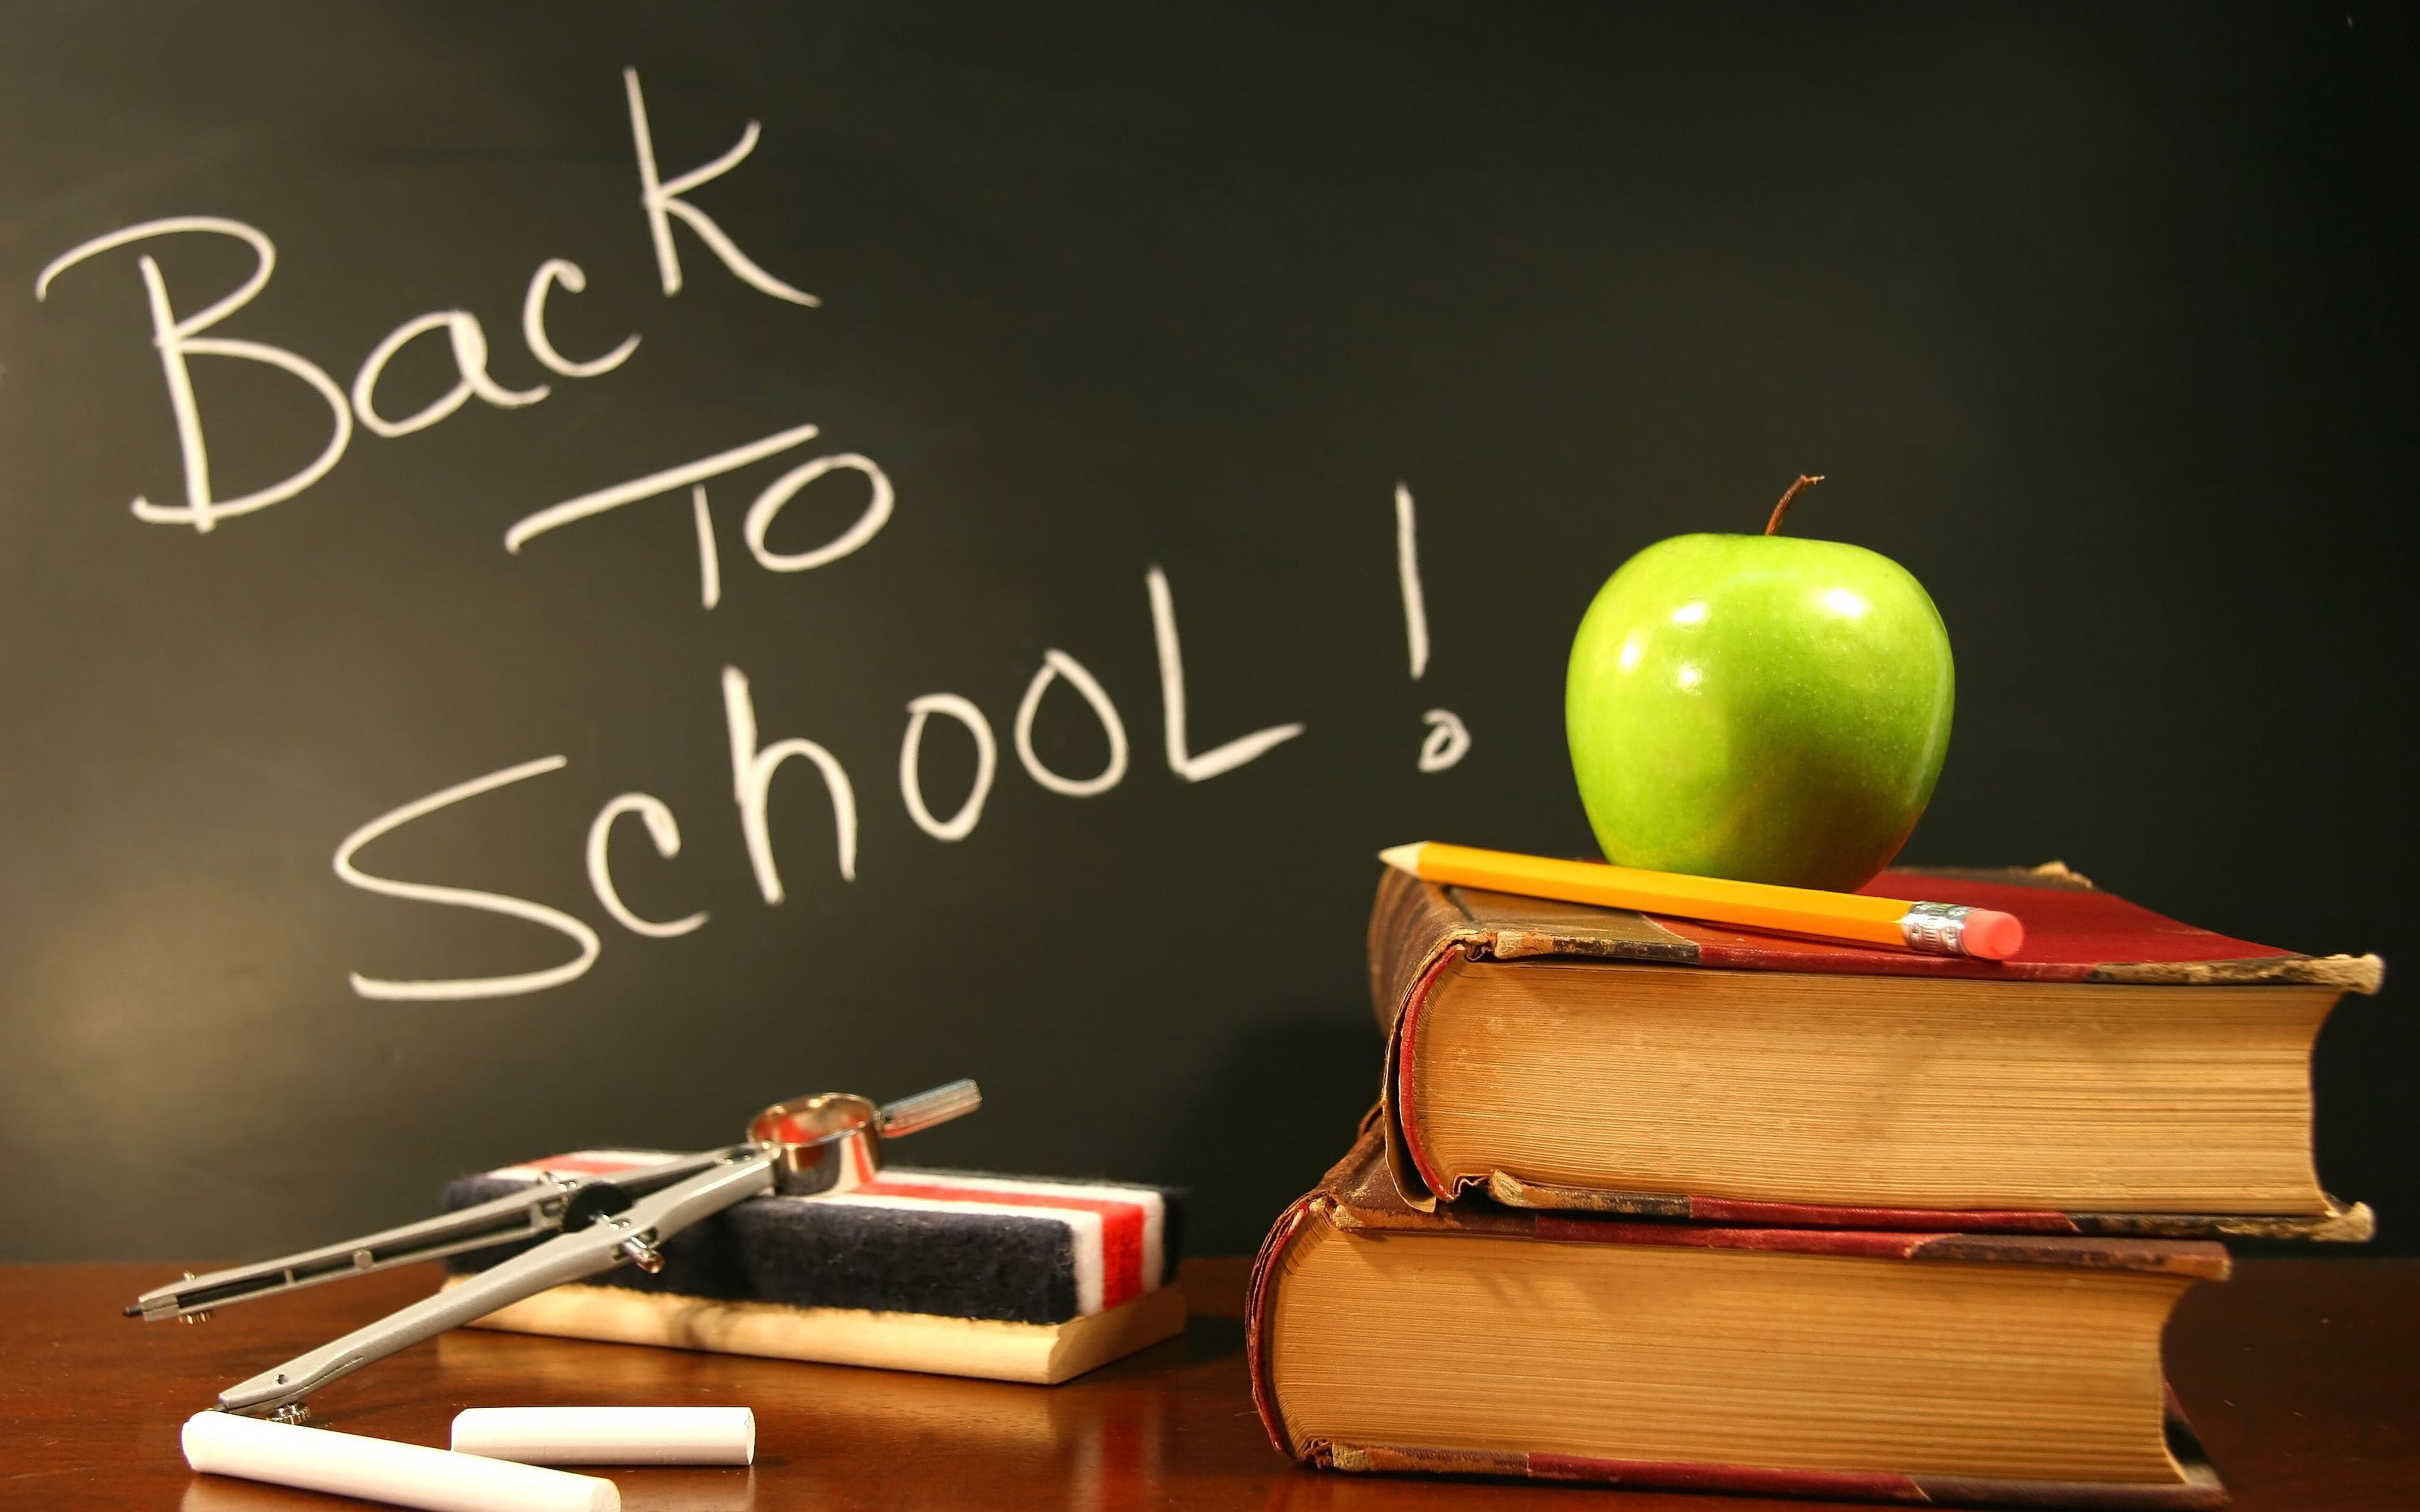 Back to school for a new year   HD wallpaper 5120x3200